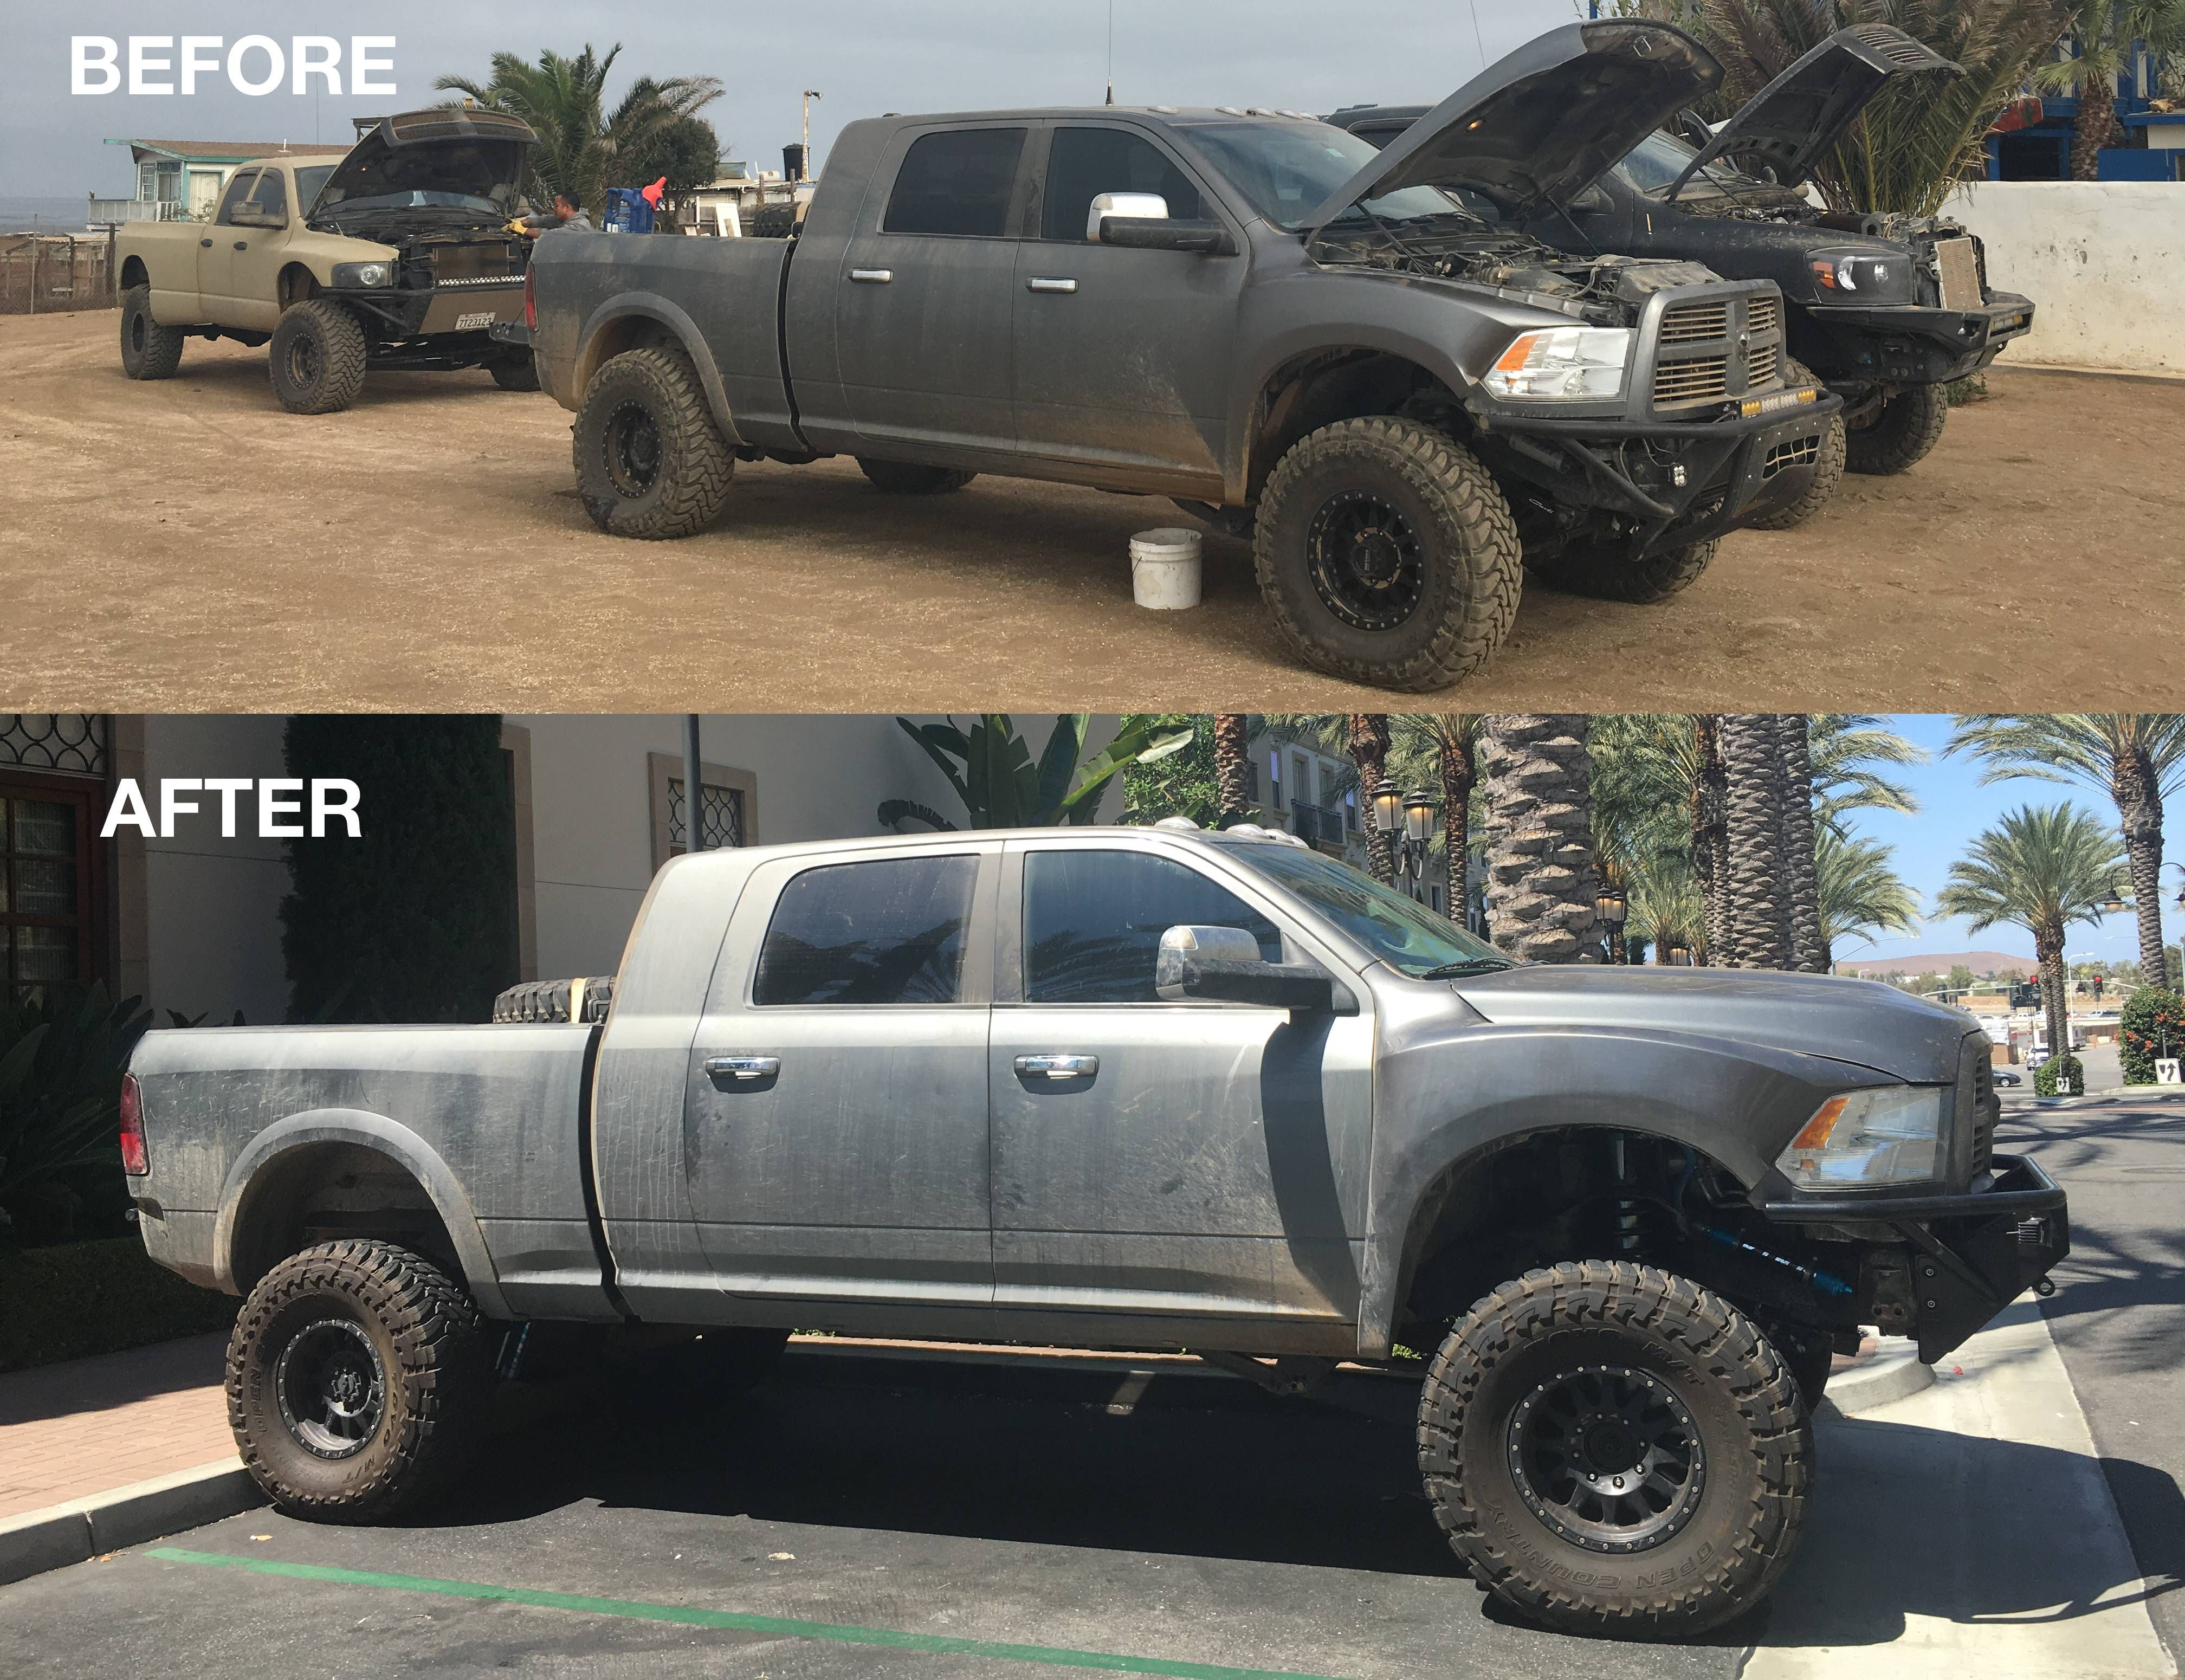 I Packed Up All My Tools And Headed Down To La To Install A Big Set Of New Parts X Post R Trucks 4x4 Offroad Grime Dubst Trucks Work Truck Cummins Motor